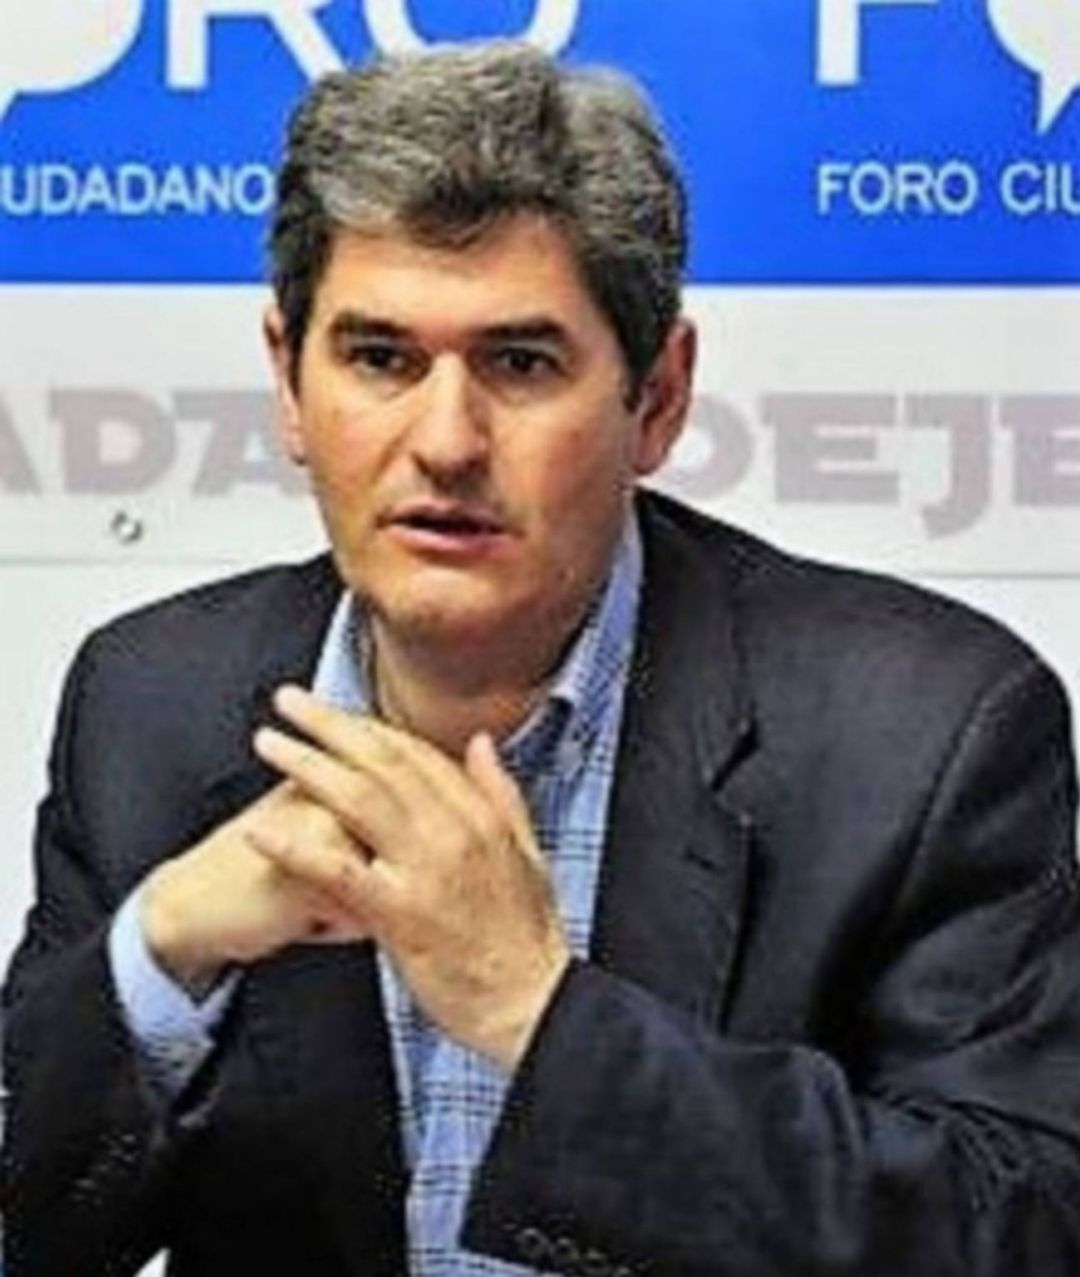 Francisco Benavent